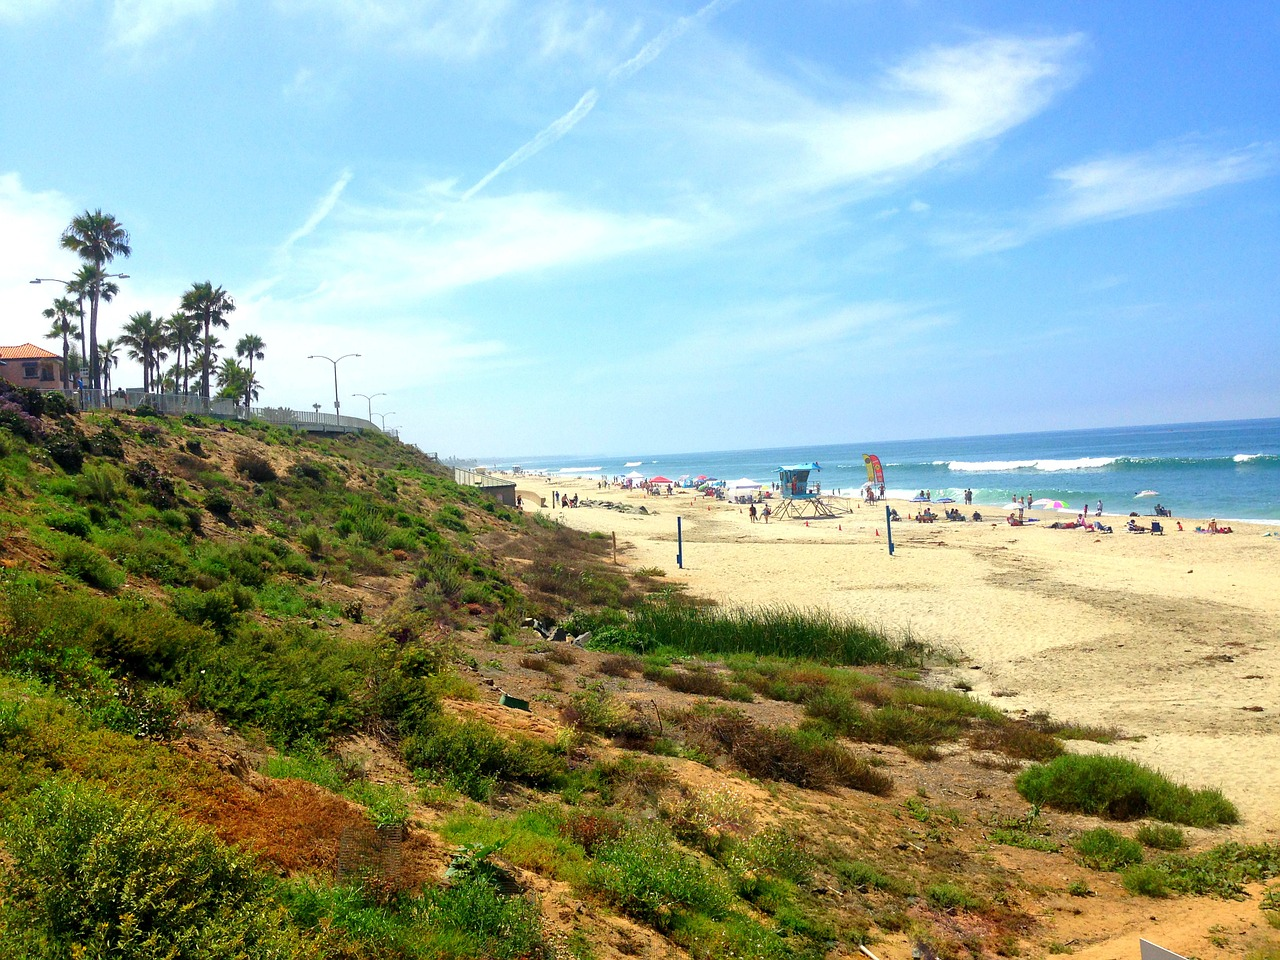 carlsbad beach san diego california beach free photo